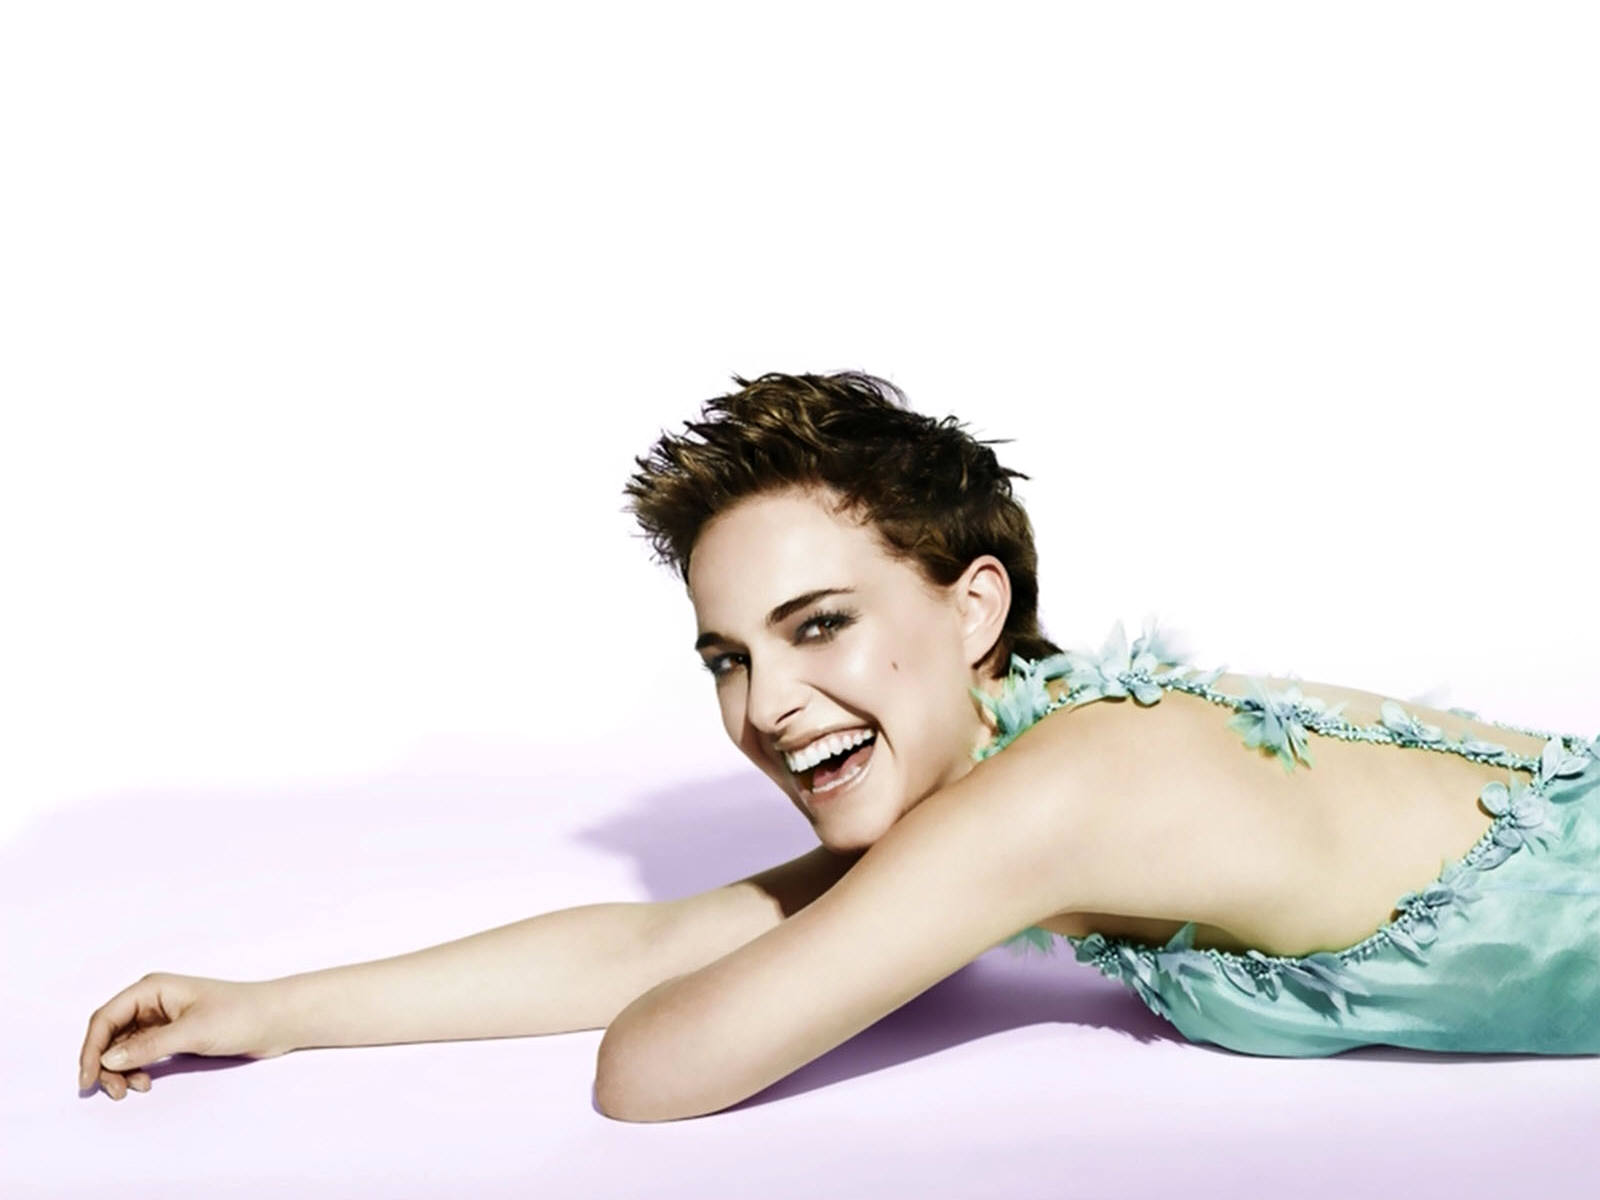 http://3.bp.blogspot.com/-1SJDbF7PzaY/TtERi2tcP7I/AAAAAAAAJlk/52bnj6sGh8o/s1600/Natalie_Portman_Teen_Girl_movie_Wallpaper.jpg